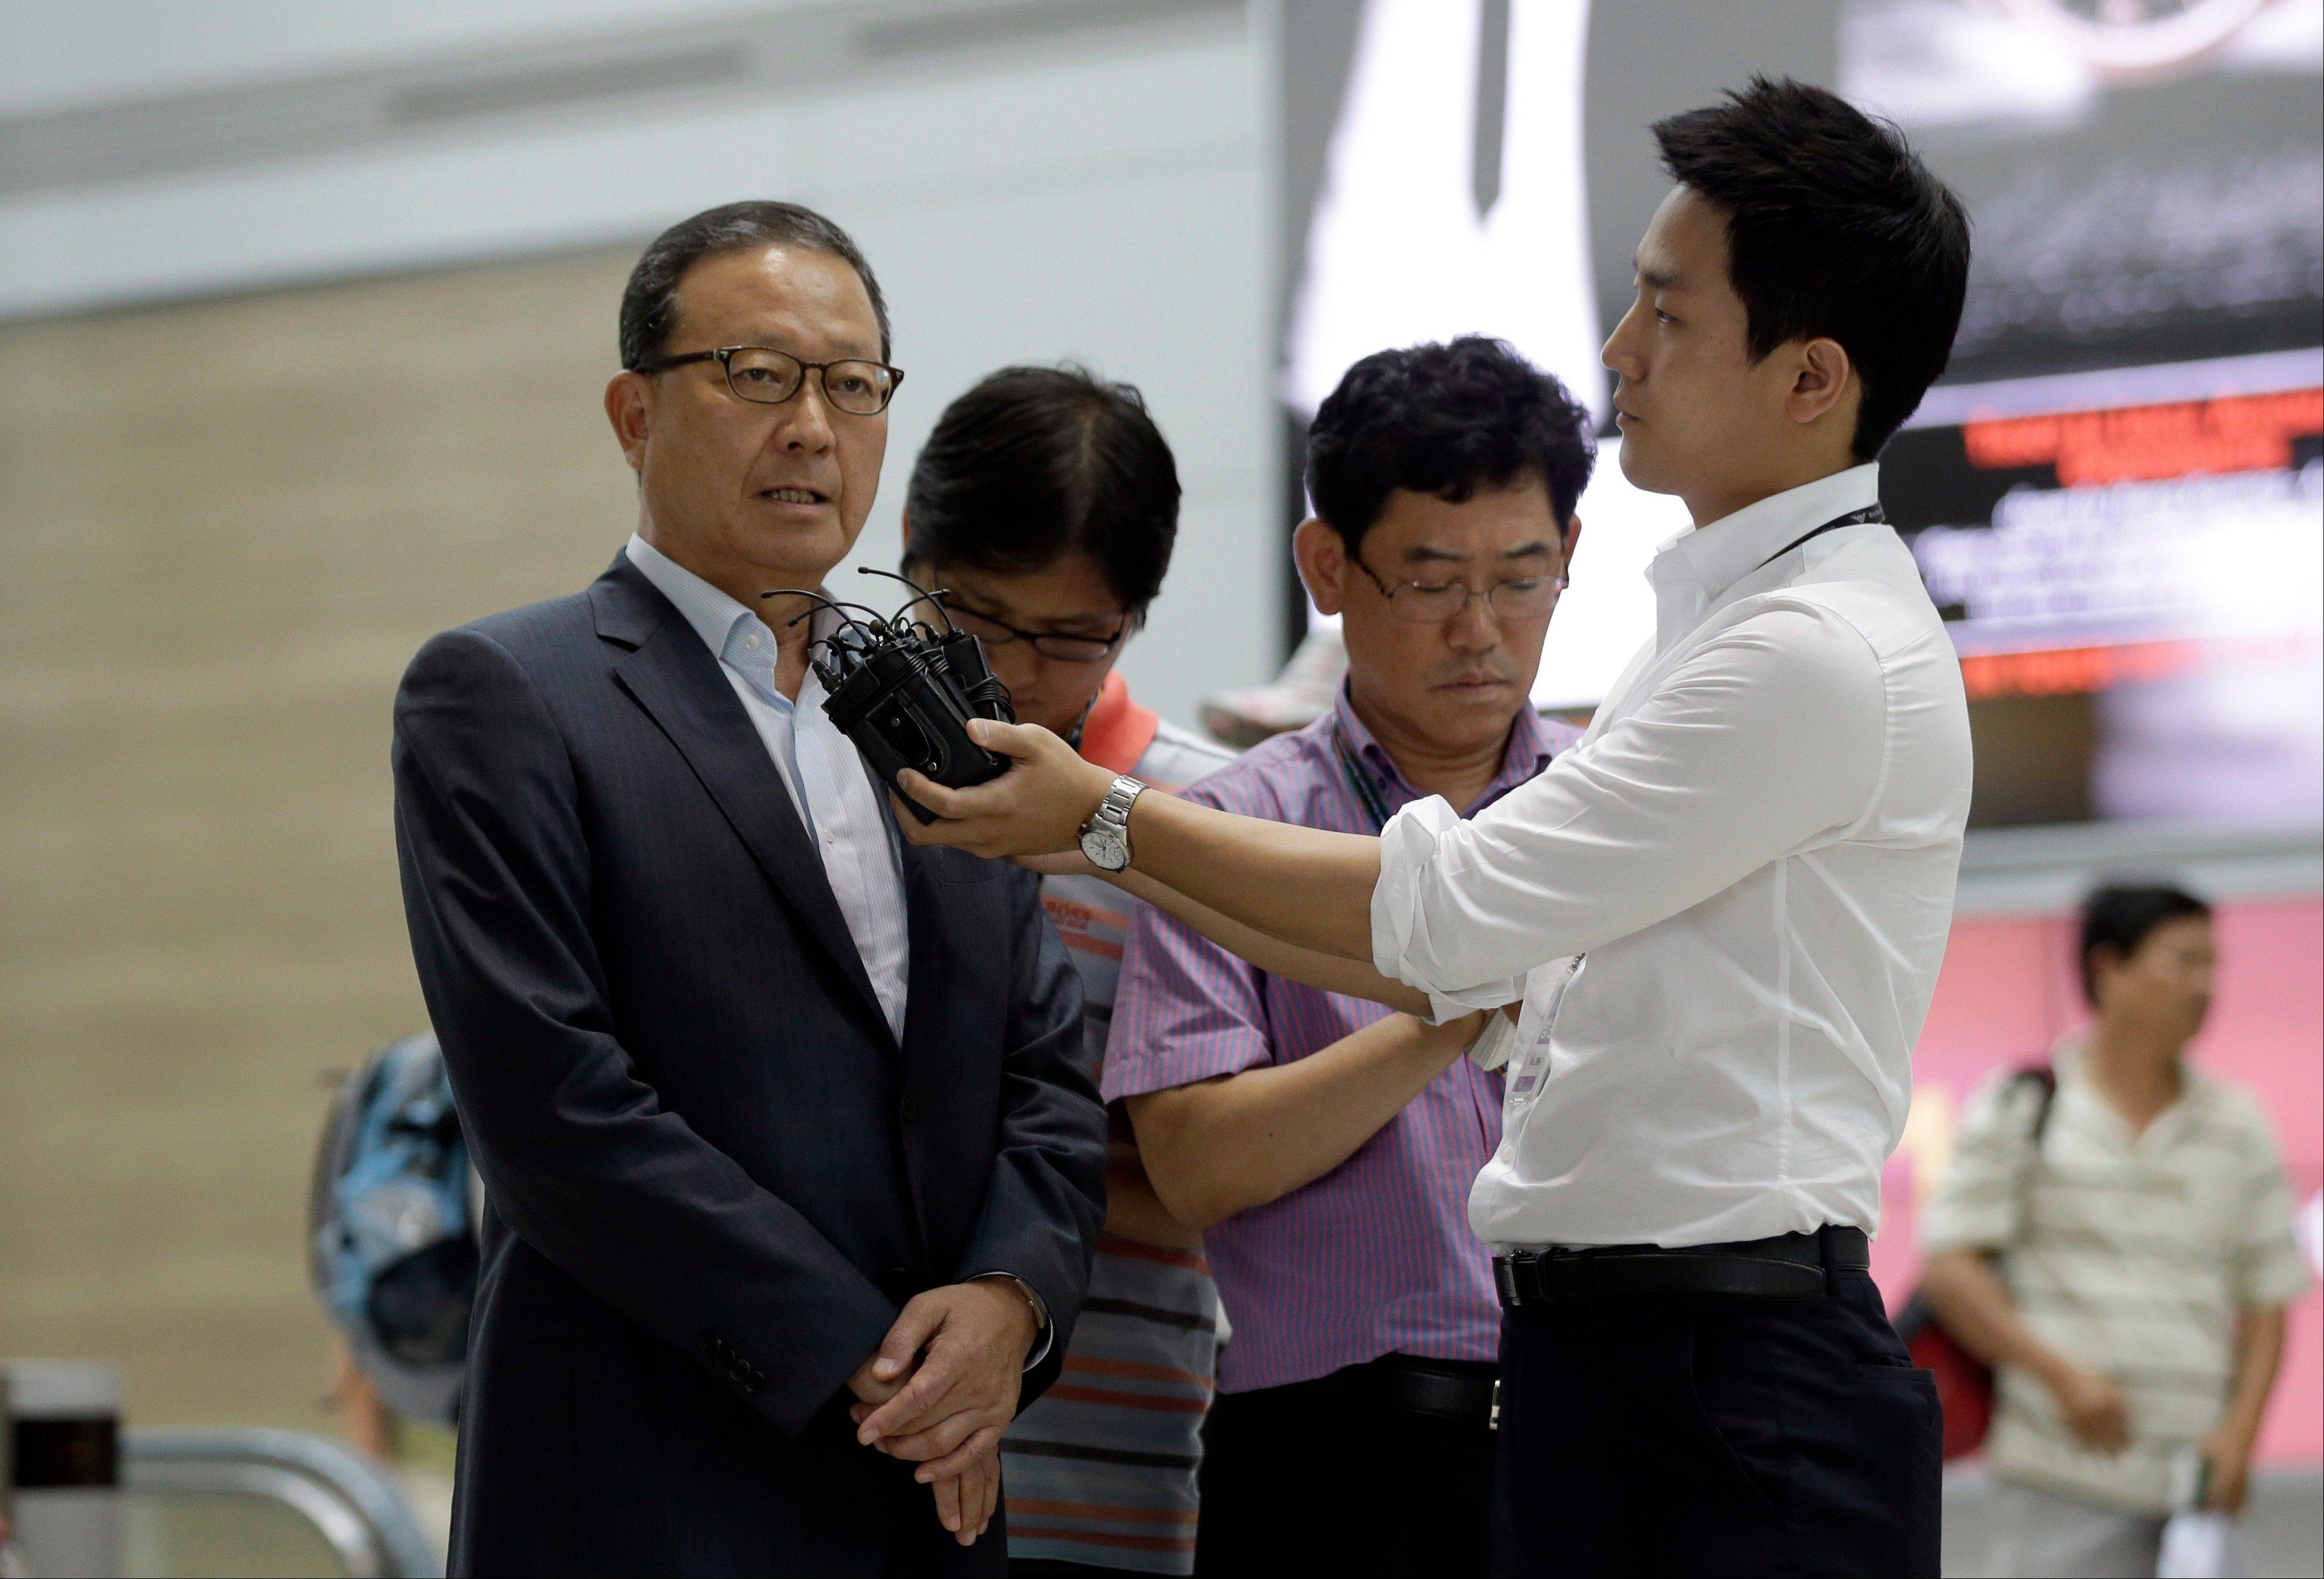 Asiana Airlines President and CEO Yoon Young-doo, left, answers reporters' questions before heading to San Francisco at the flight gate of the Incheon International Airport in Incheon, west of Seoul, South Korea, Tuesday, July 9, 2013. A South Korean official says both U.S. and Korean investigators have been interviewing the pilots who were in the cockpit when an Asiana Airlines plane clipped a sea wall before crash landing at San Francisco International Airport Saturday.